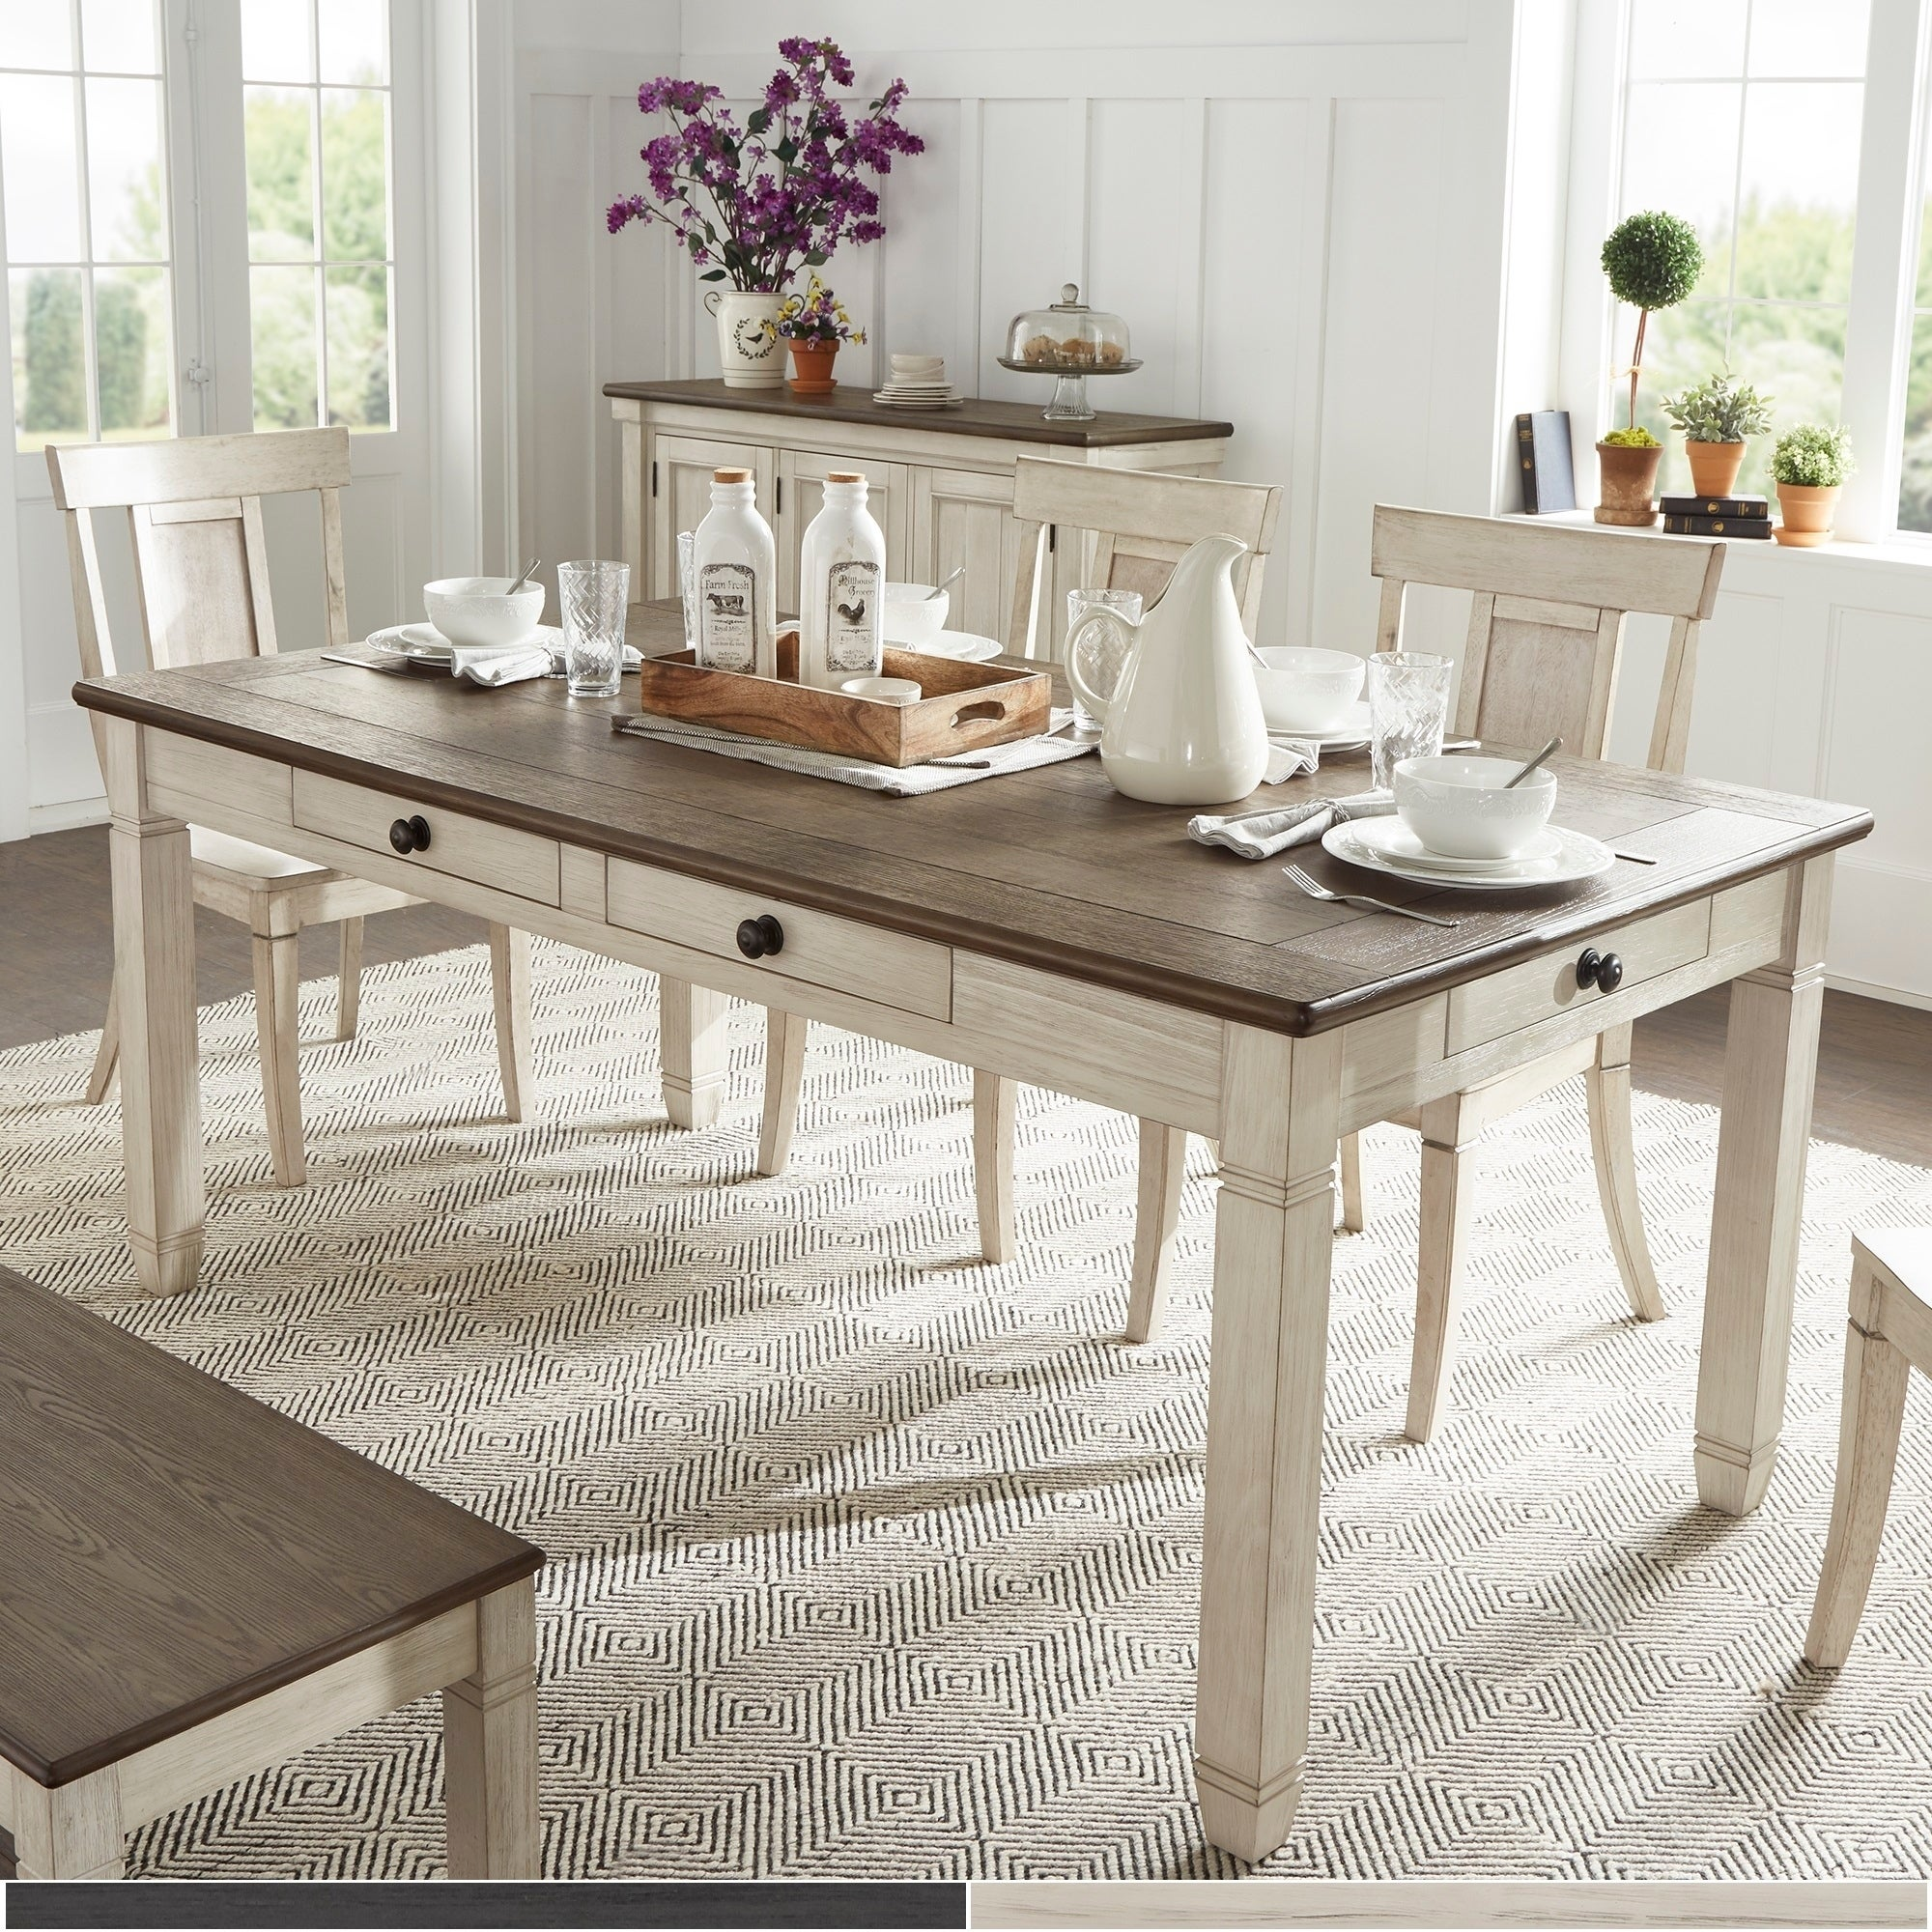 Buy Storage Kitchen & Dining Room Tables Online at Overstock ...